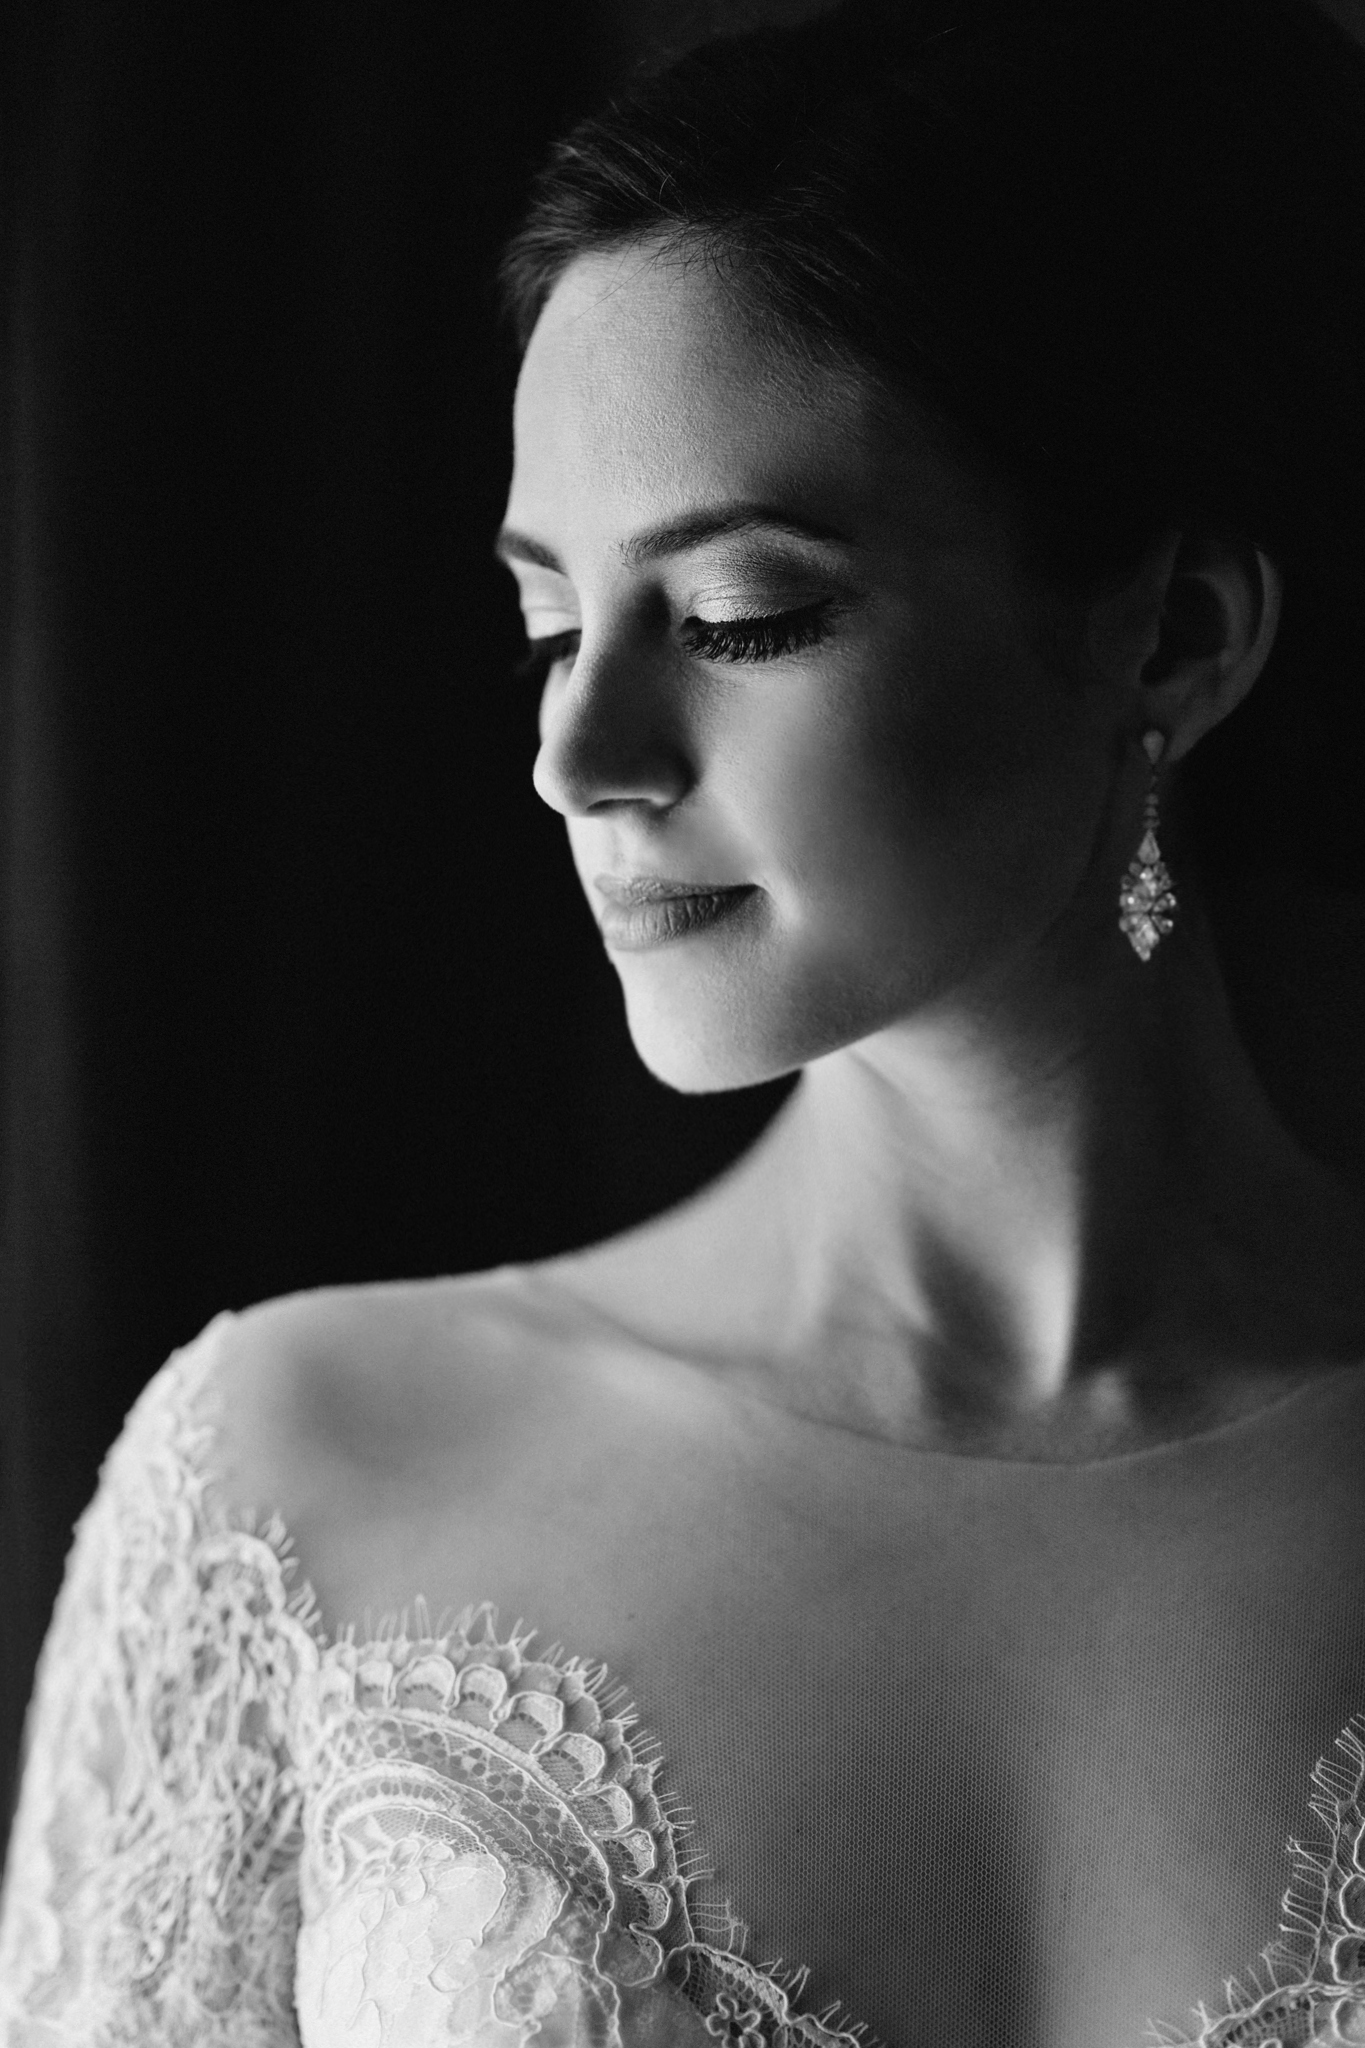 """""""The Bride"""" Category, 449th Place out of 14,265 Images"""